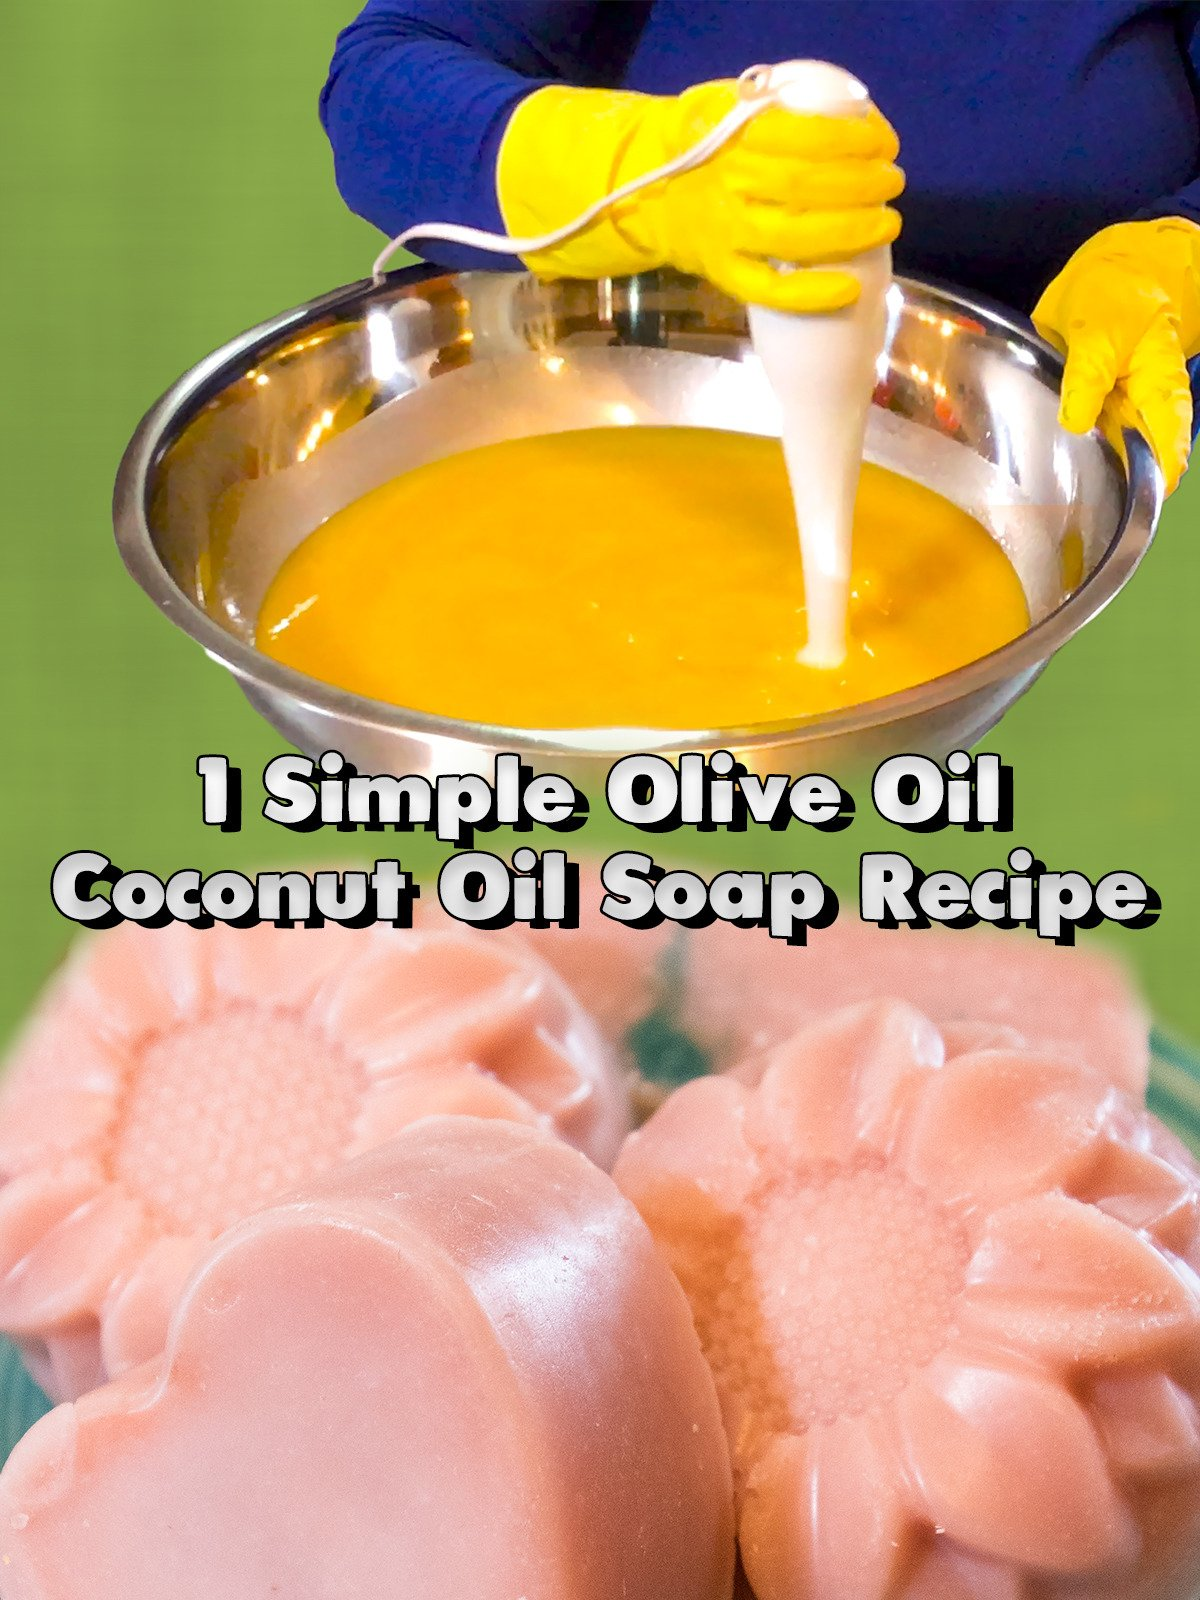 1 Simple Olive Oil Coconut Oil Soap Recipe on Amazon Prime Instant Video UK